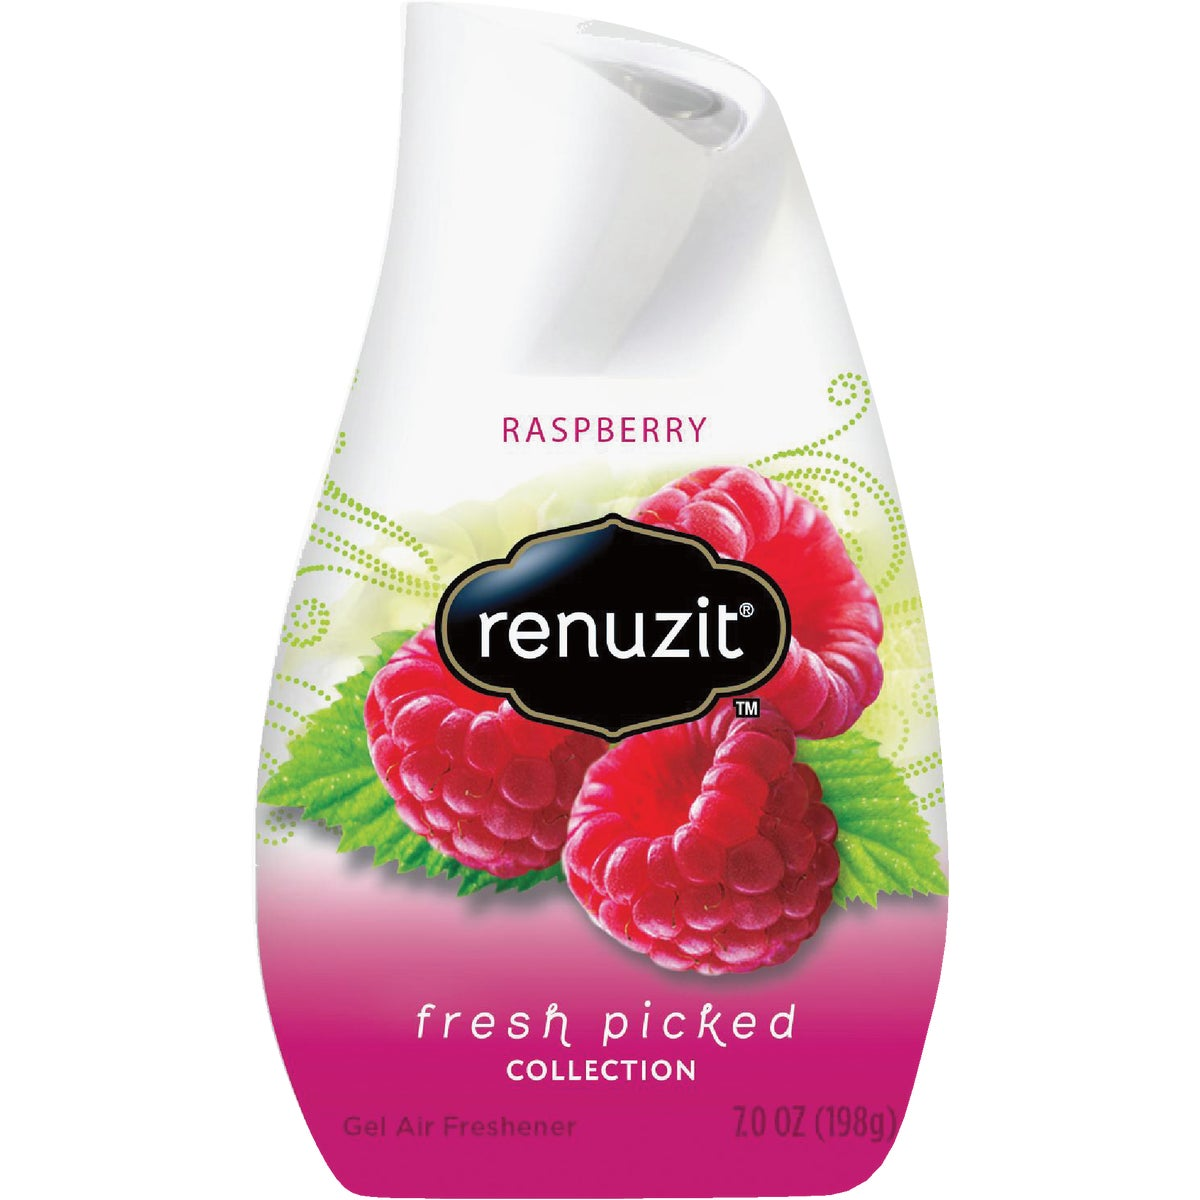 RASPBERRY AIR FRESHNER - 03667 by Dial Corp